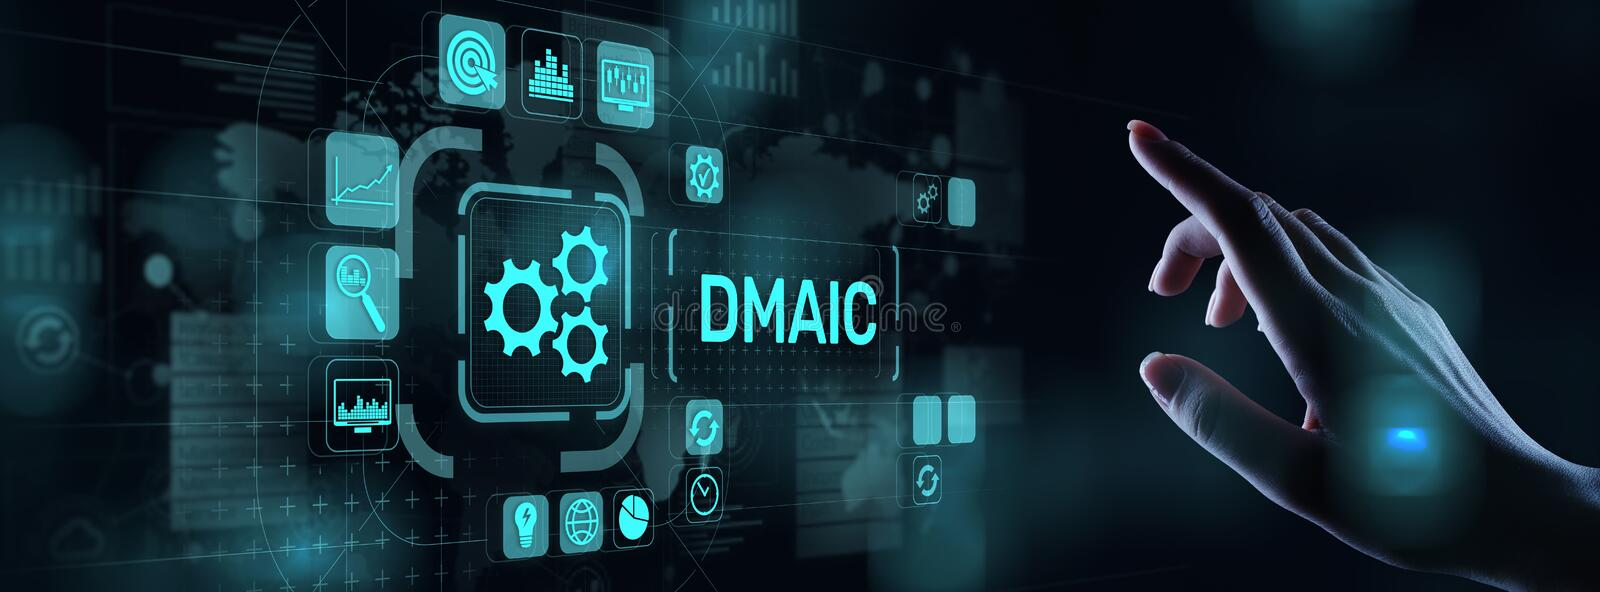 DMAIC Define Measure Analyze Improve Control Industrial business process optimisation six sigma lean manufacturing. Technology concept on virtual screen stock photo